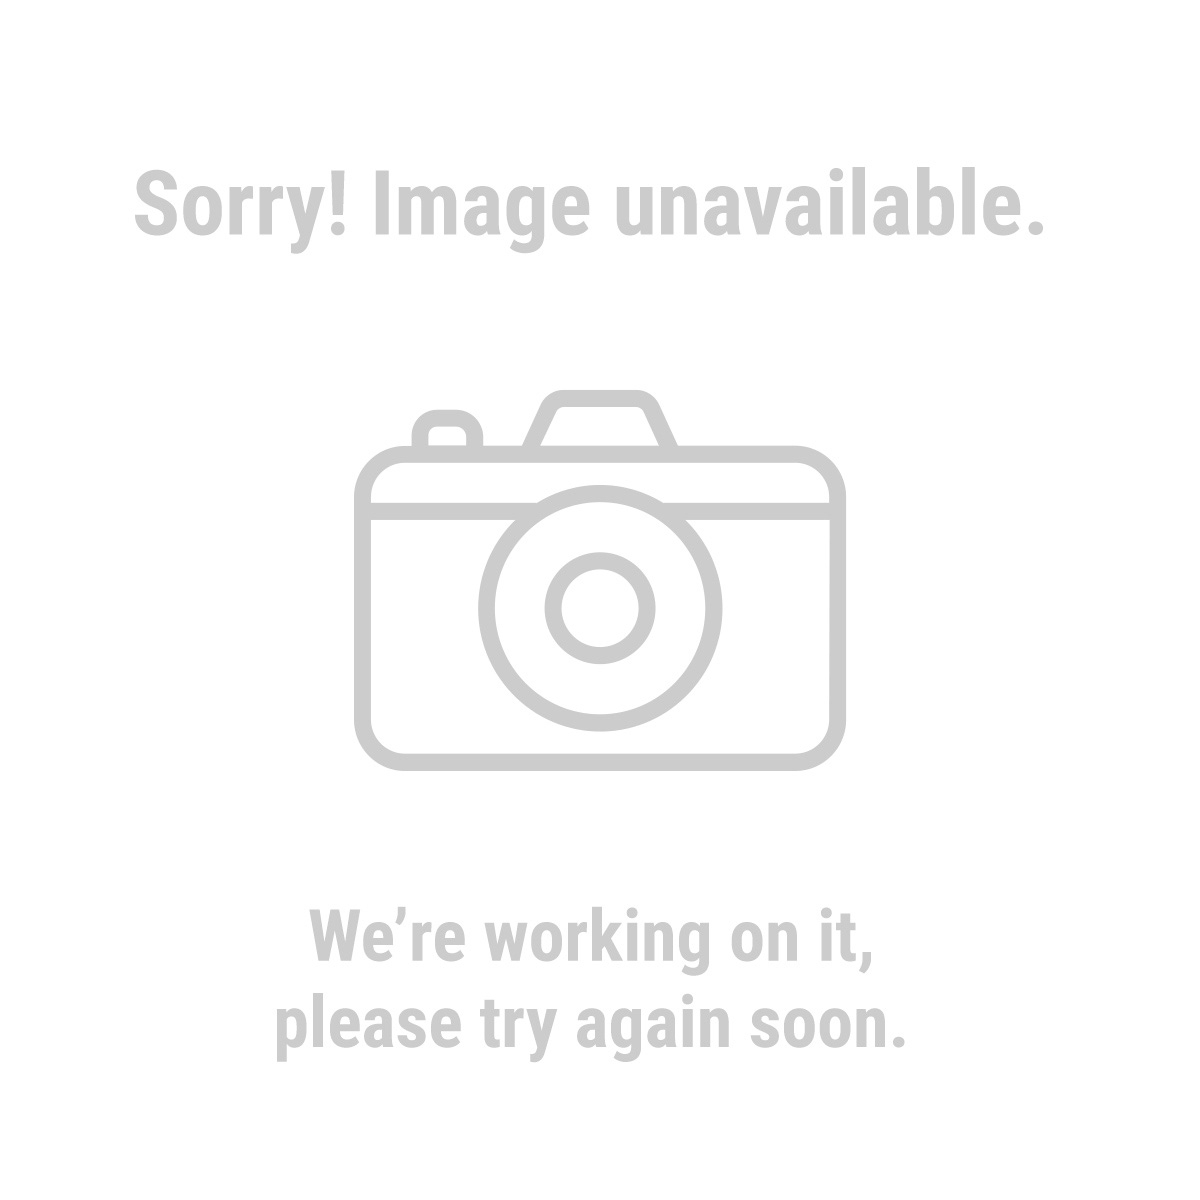 Harbor Freight Tachometer — Moped Army